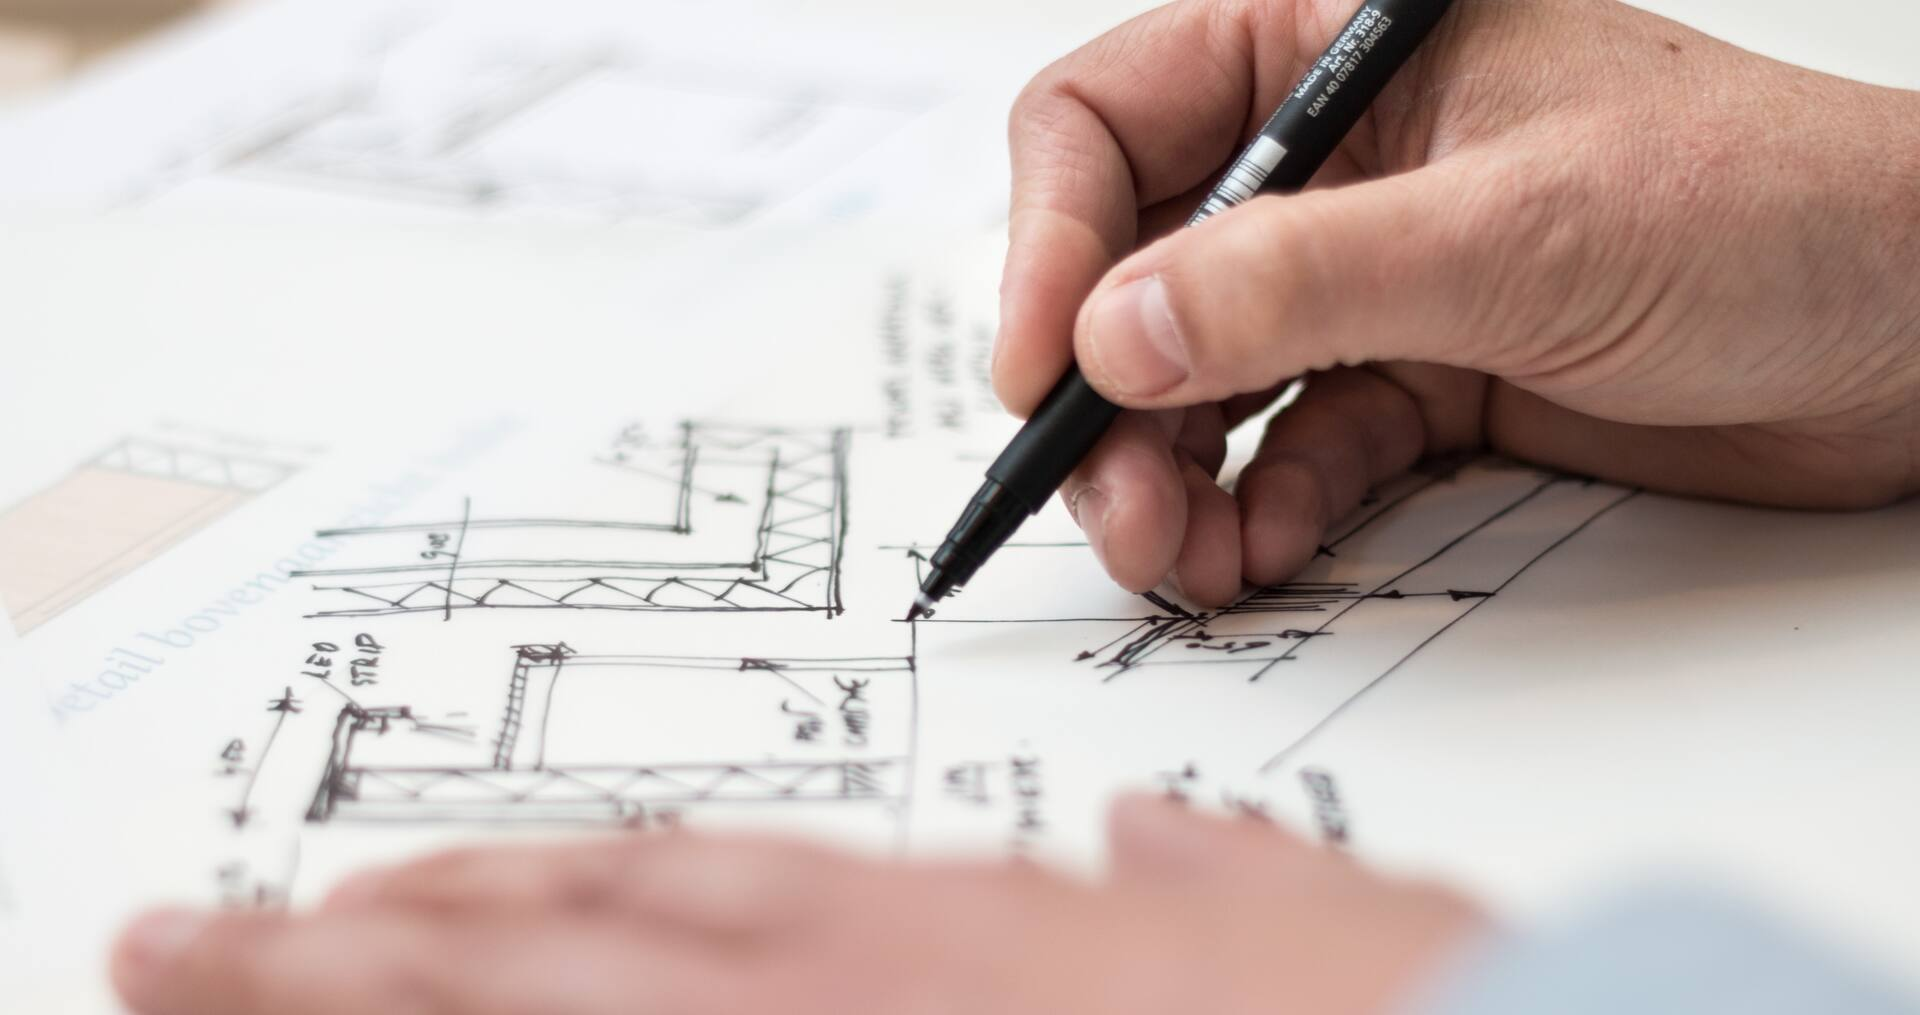 Building from a plan may not be what you think